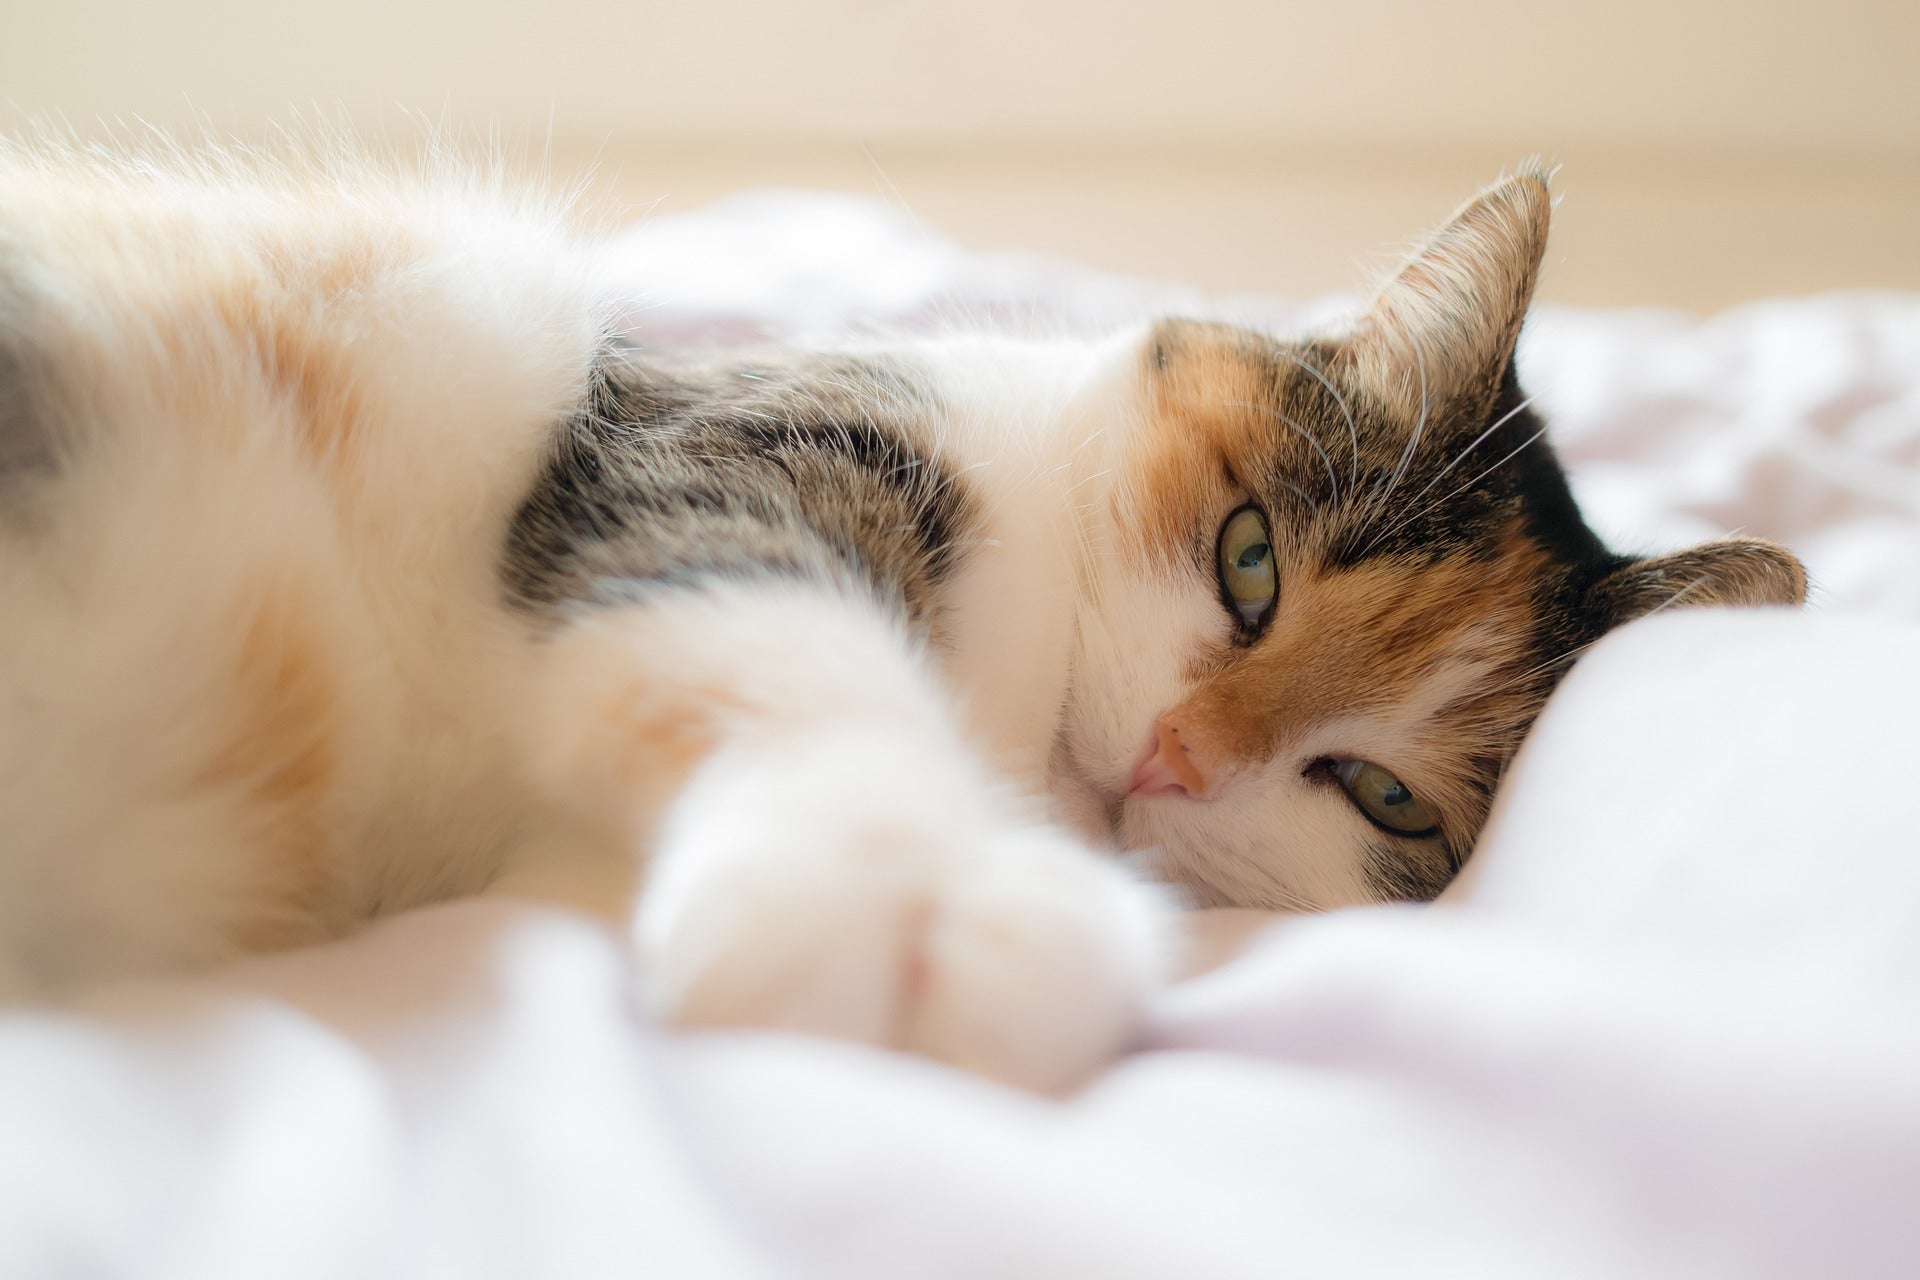 Cat coat genetics: A tricolor calico cat